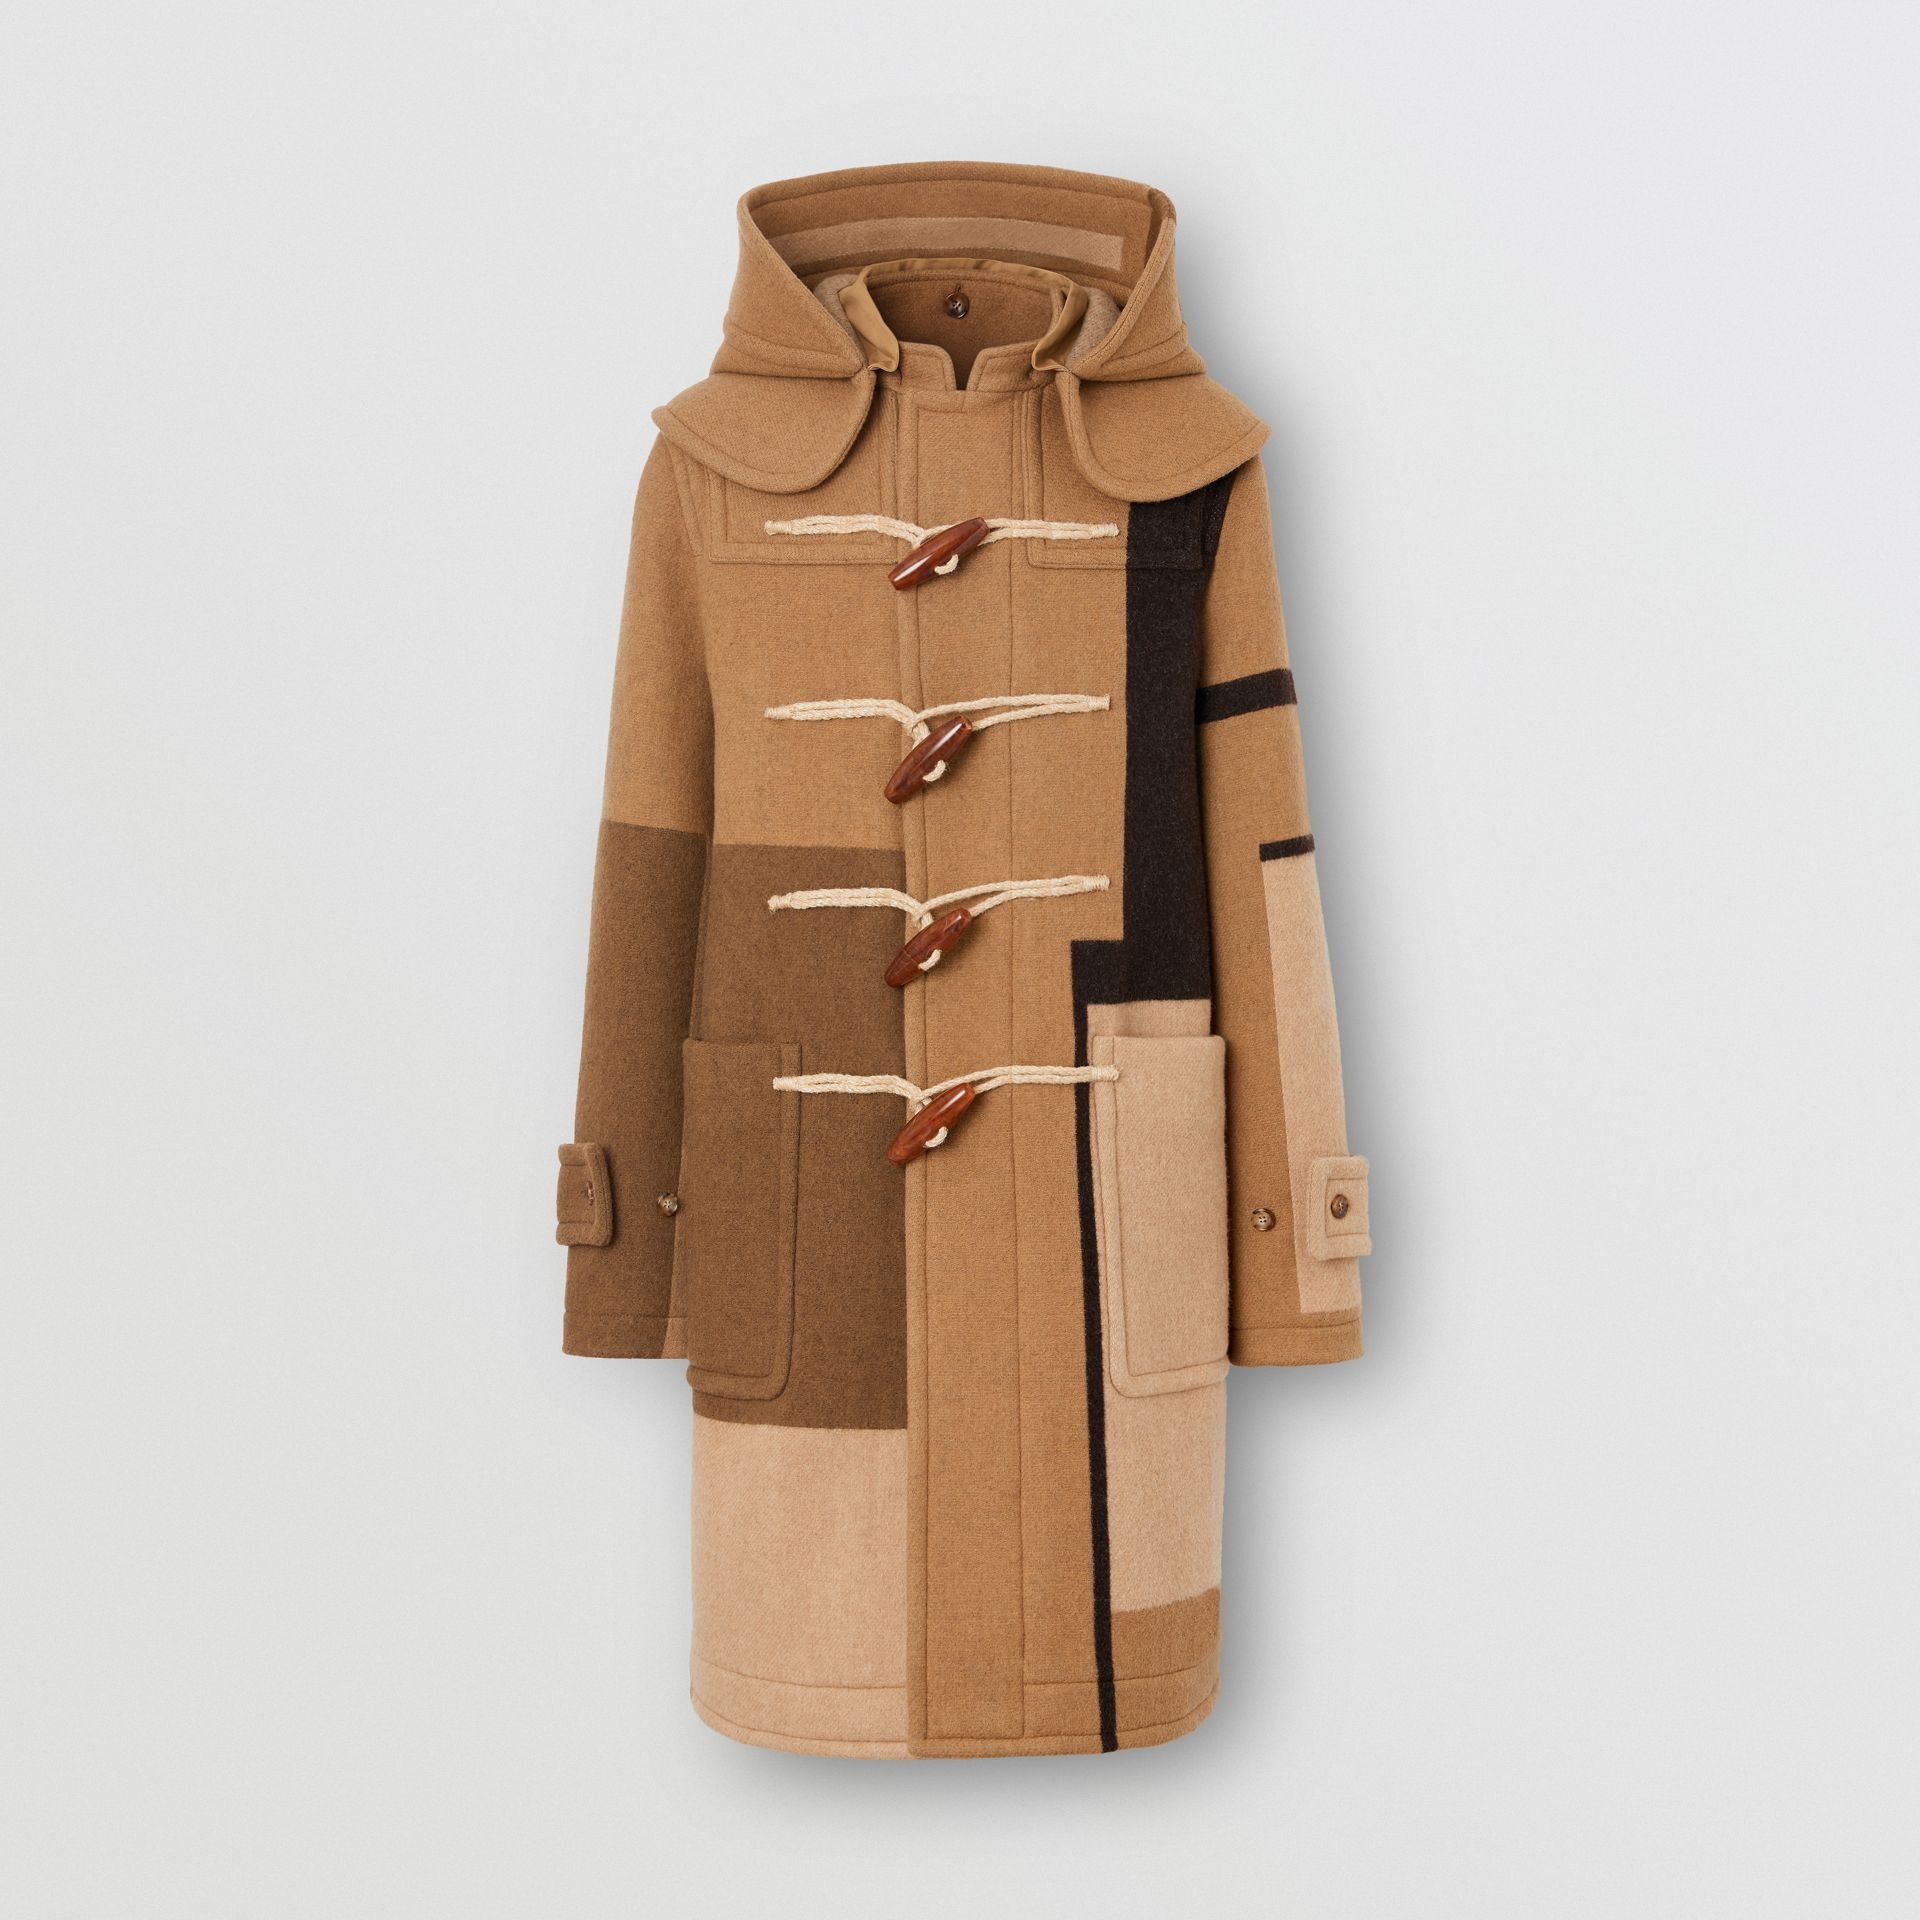 Panelled Wool Duffle Coat in Warm Camel - Men | Burberry Singapore - gallery image 3